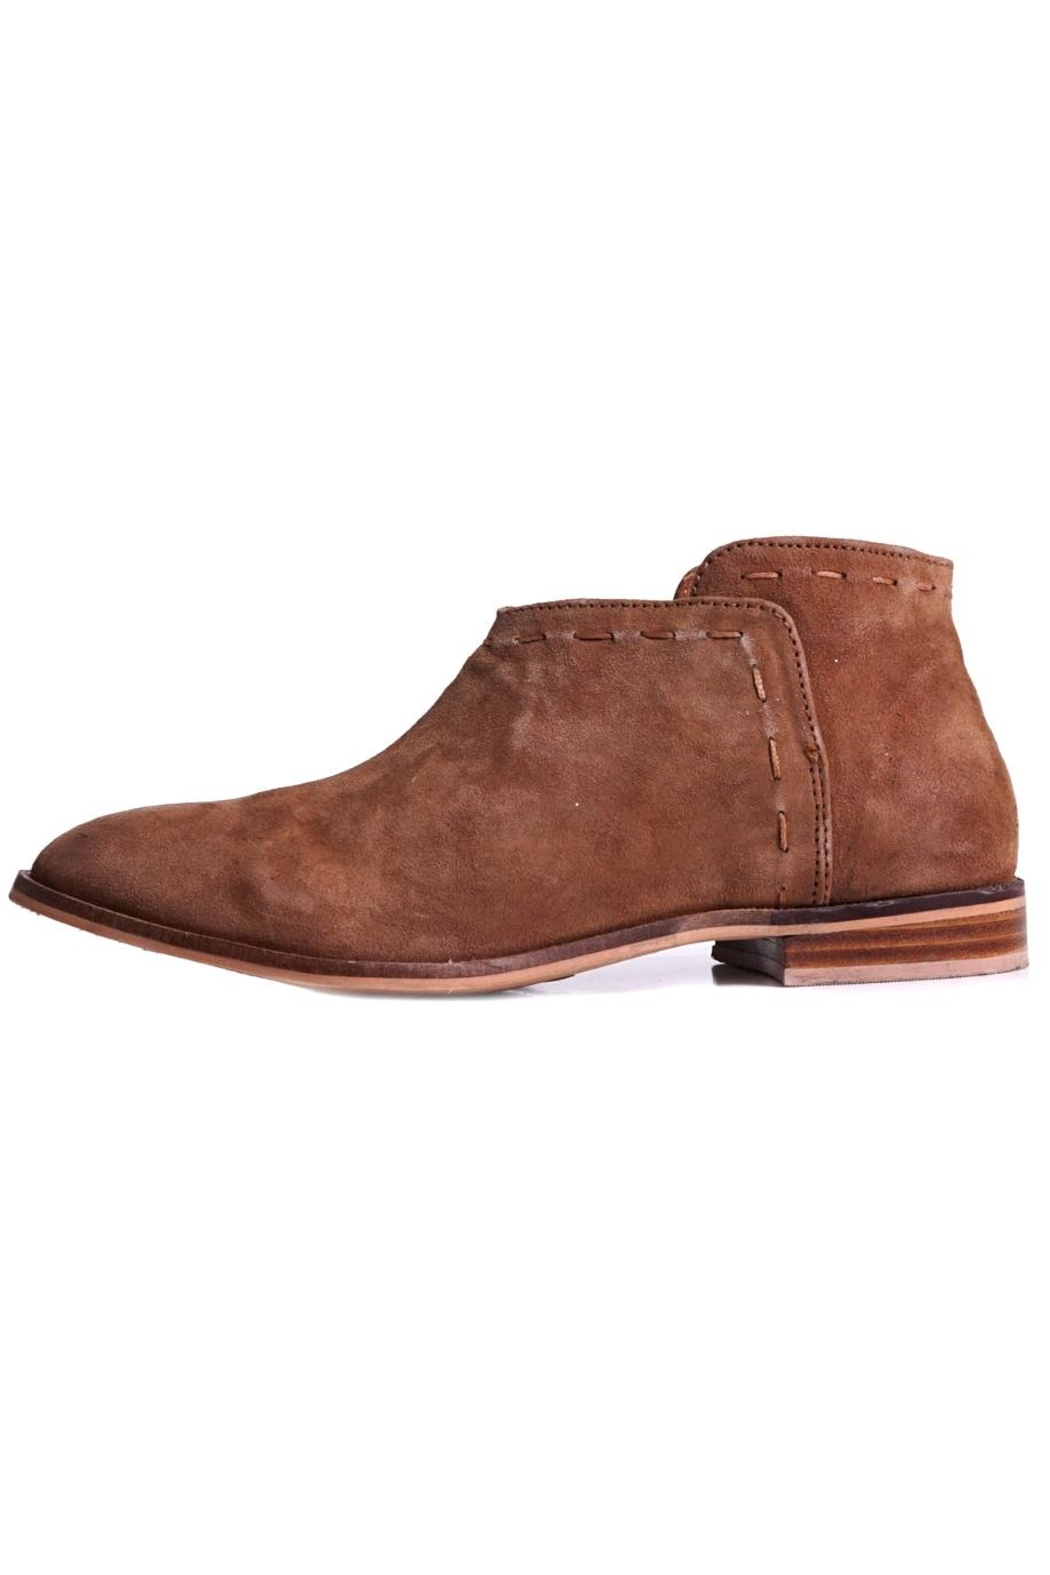 Rebels Suede Odell Bootie - Main Image